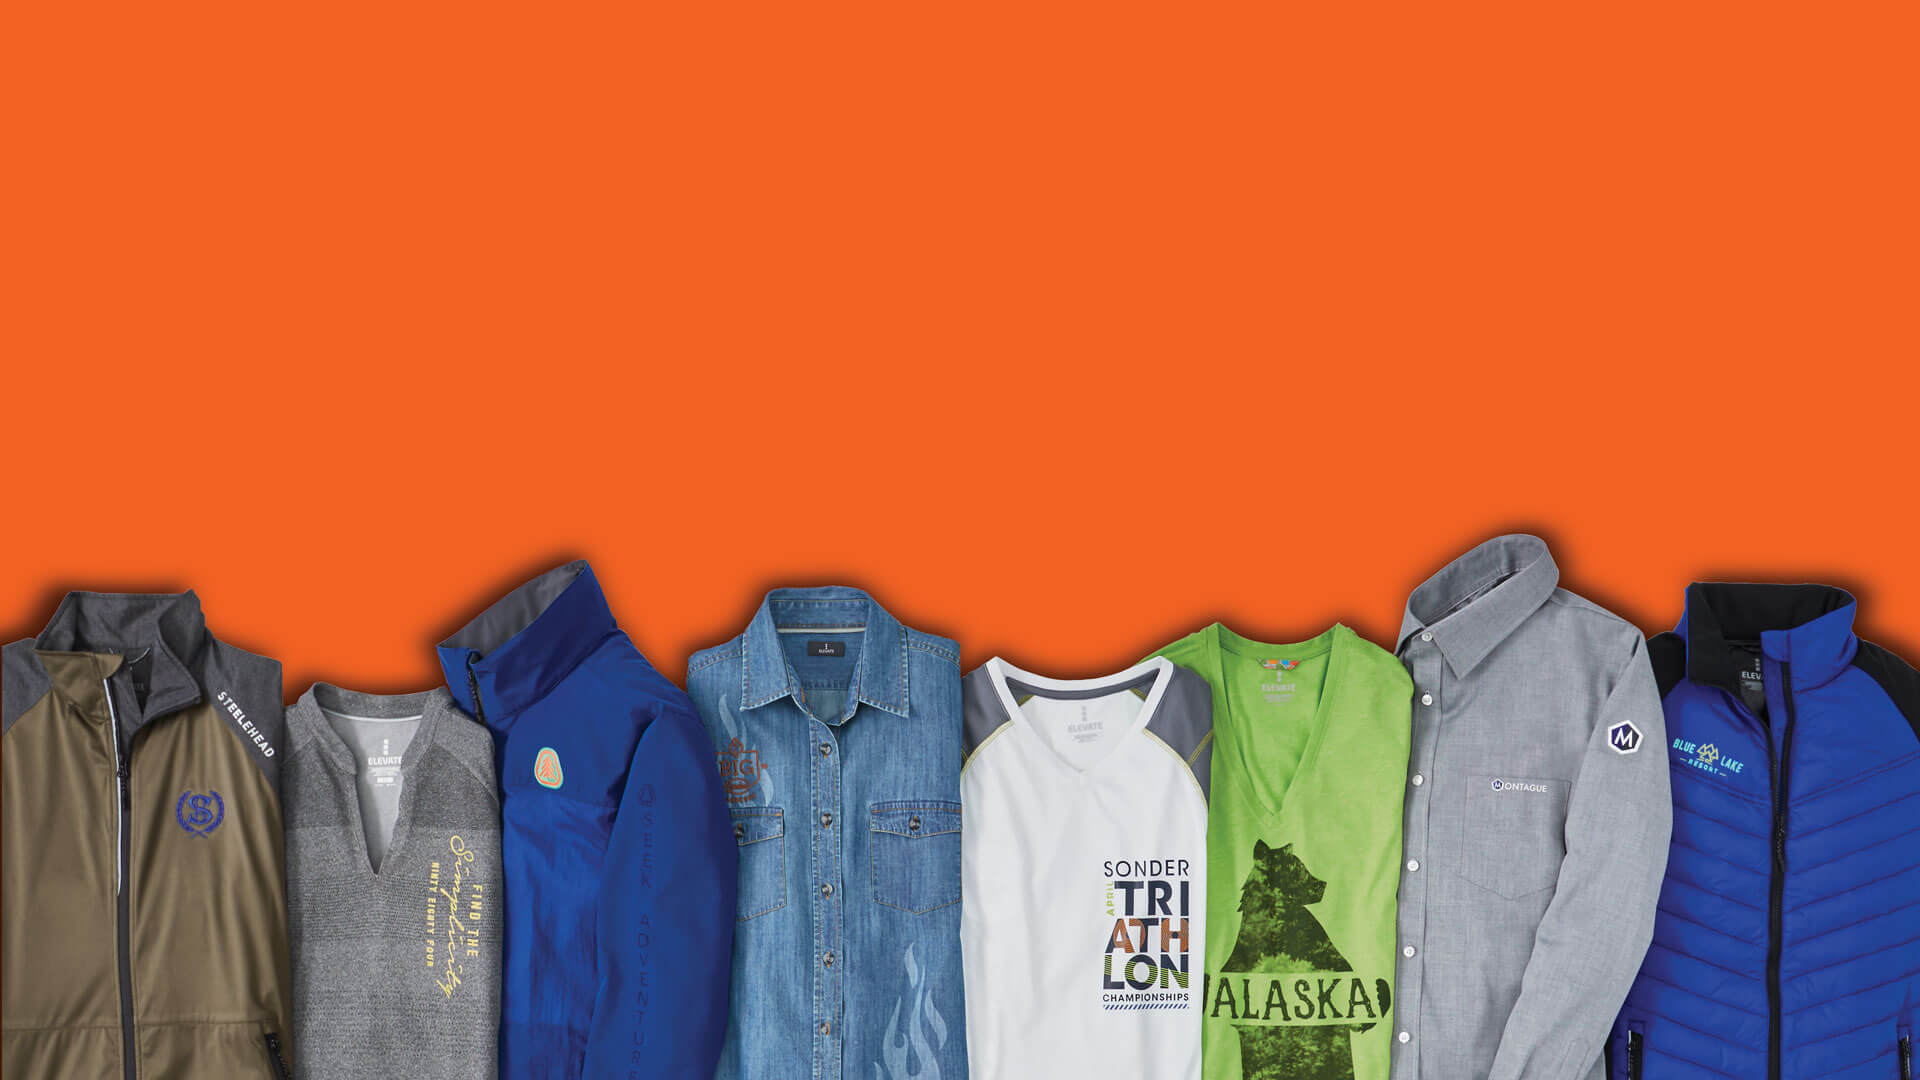 clothing on orange background